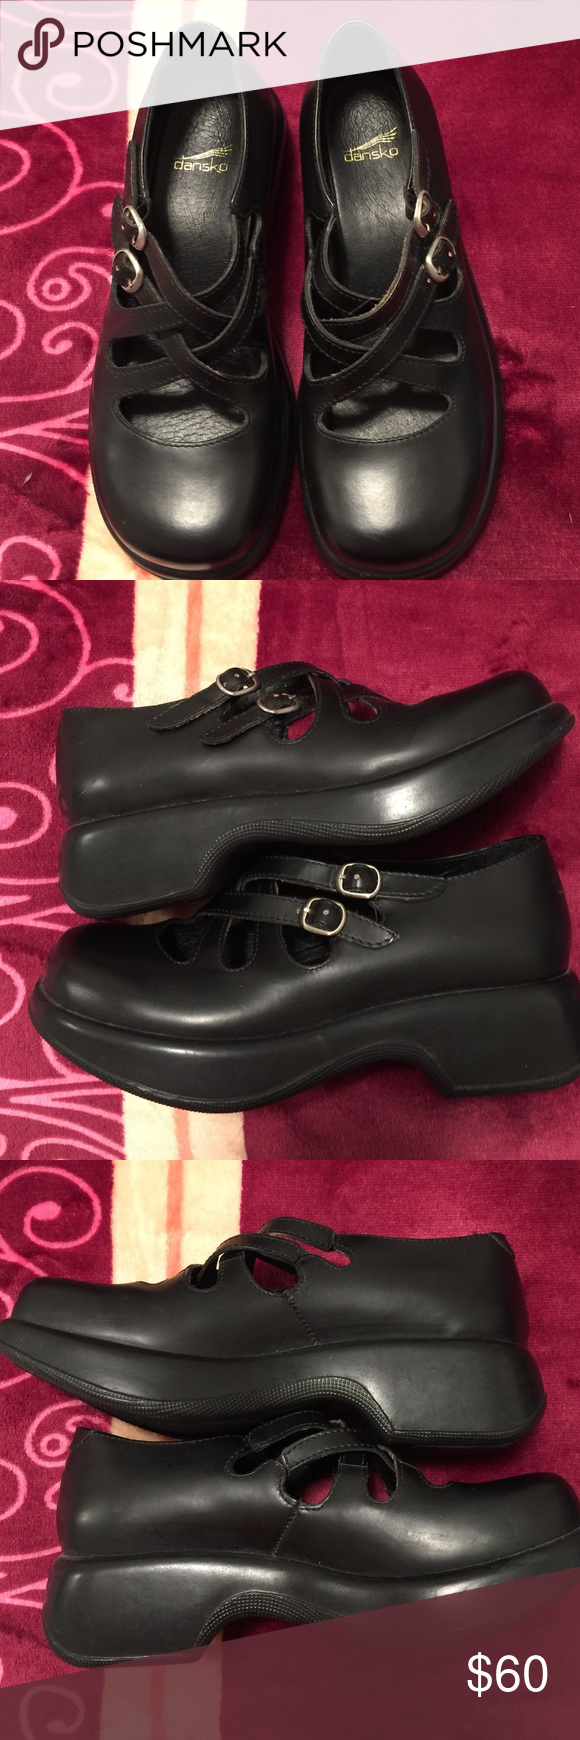 Dansko shoes black Mary Jane style cute size 6 Dansko shoes black size 6 -36 Europe size Dansko Shoes